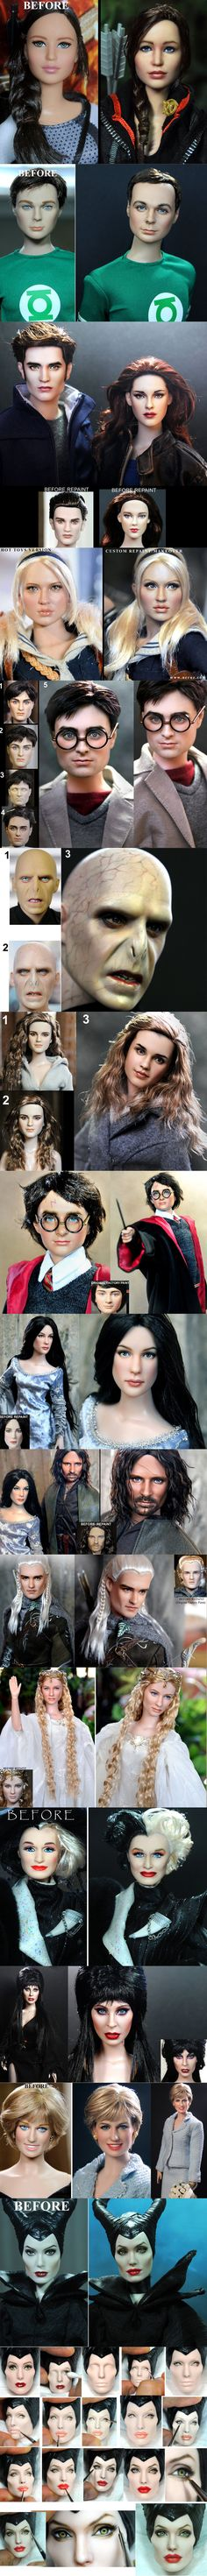 Noel Cruz repaints celebrity dolls to make them look more realistic. He is one of the most versatile & distinguished repaint artists in the doll community. He is most recognized for his character & celebrity based dolls due to their uncanny resemblance to the people they portray. See more of his work here http://www.ncruz.com